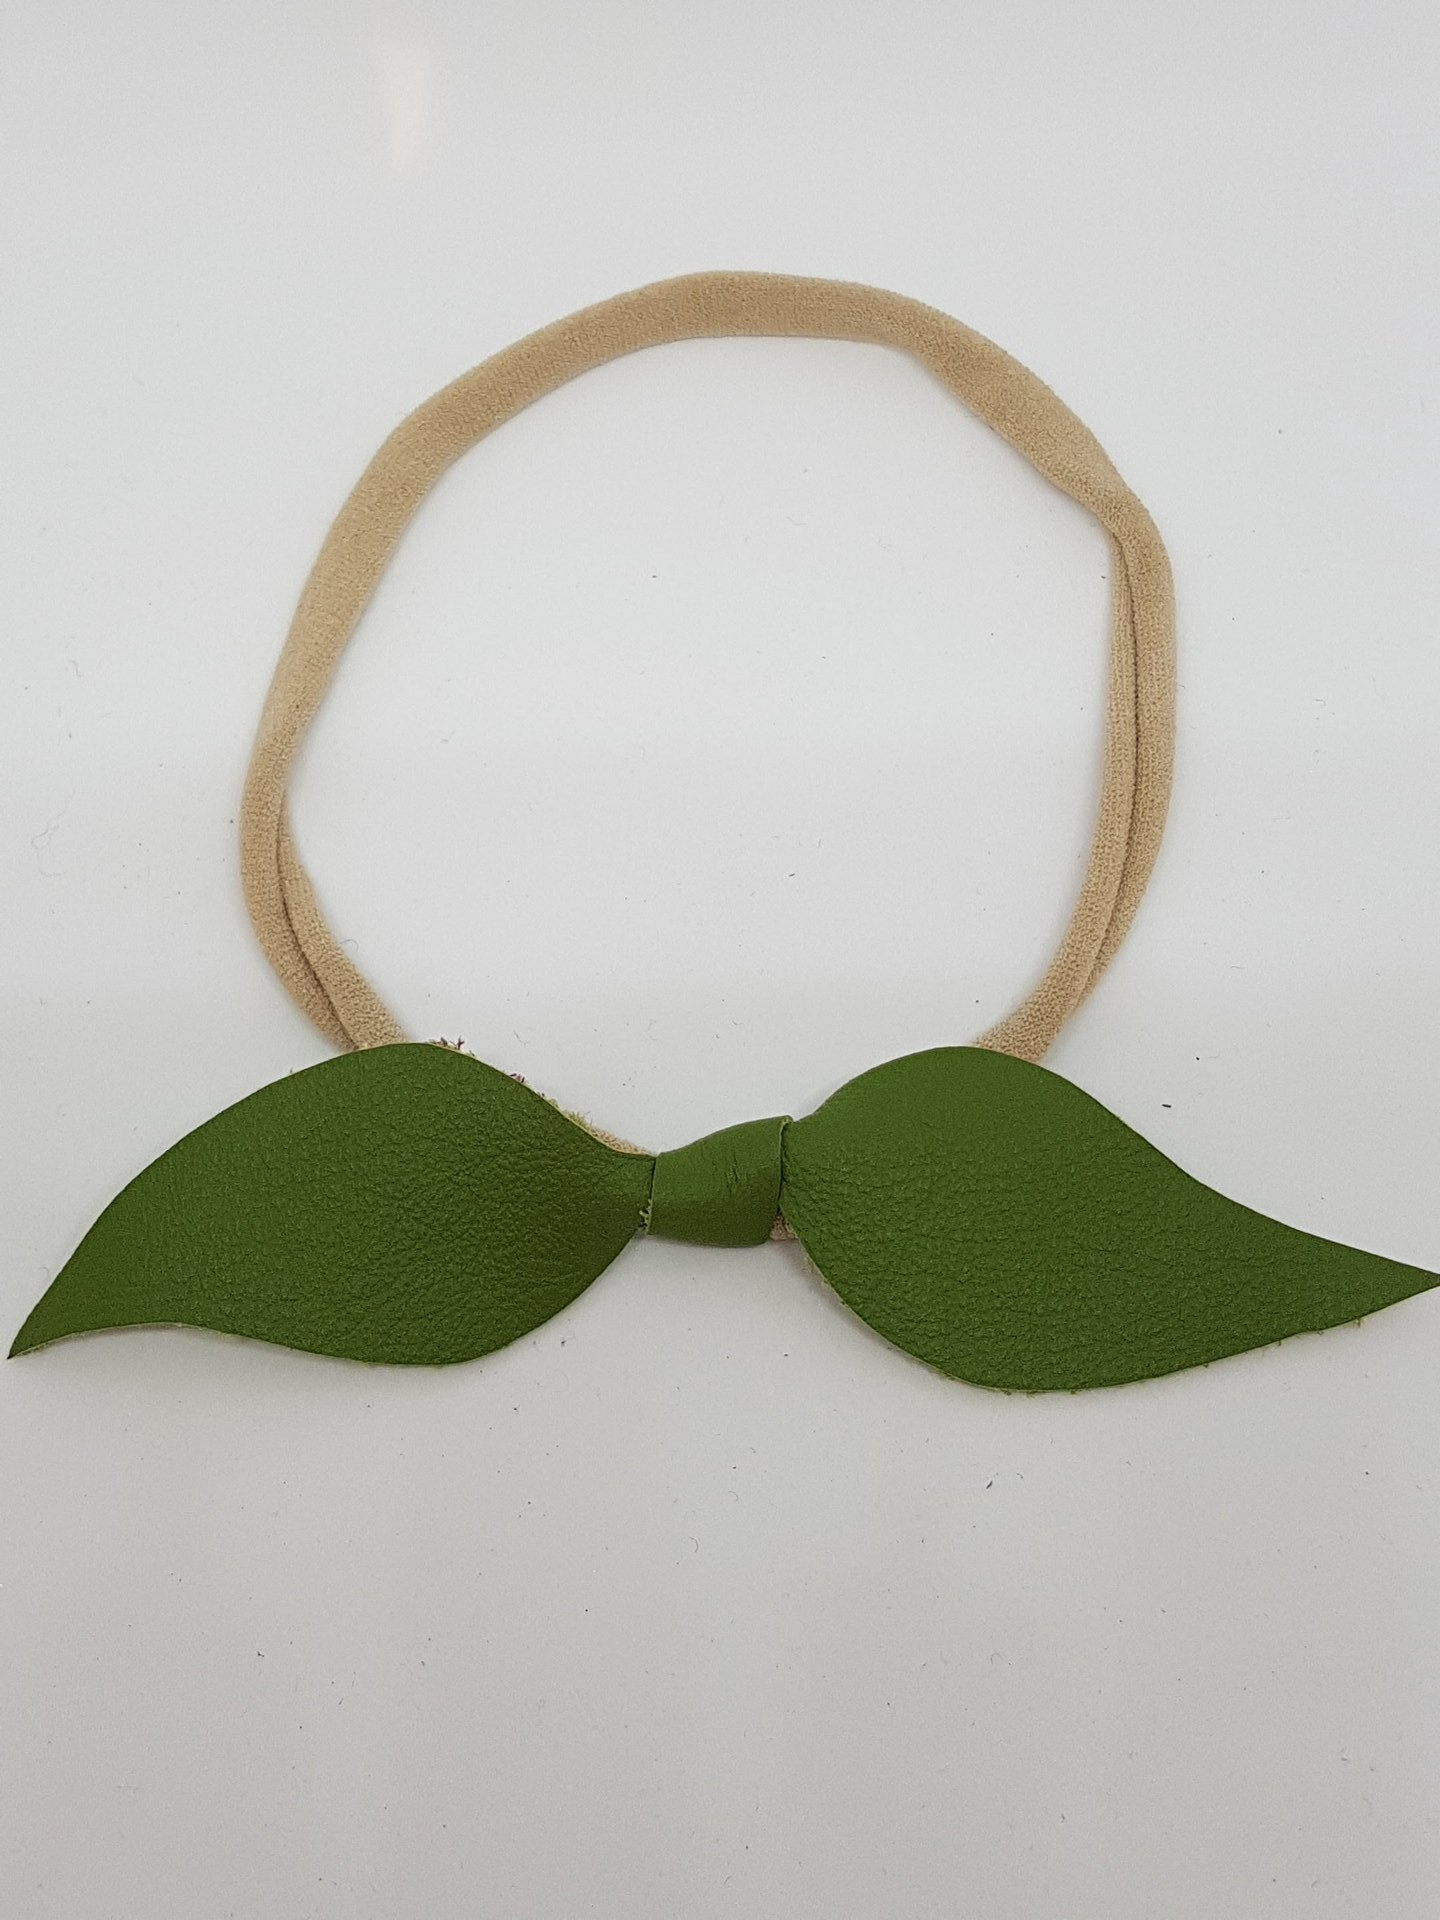 Leather Leafy Headbands - fits newborn to adult